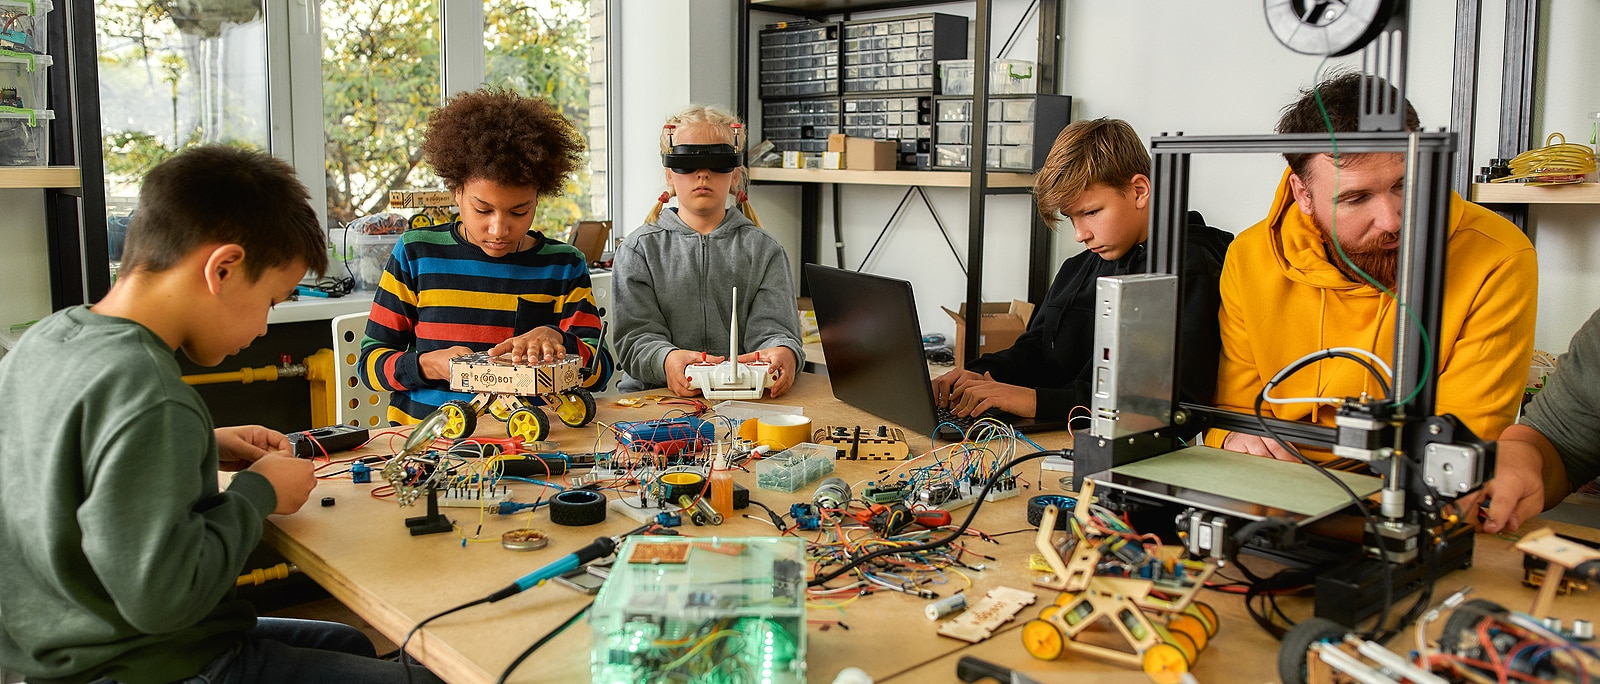 Young technicians building robots and vehicles